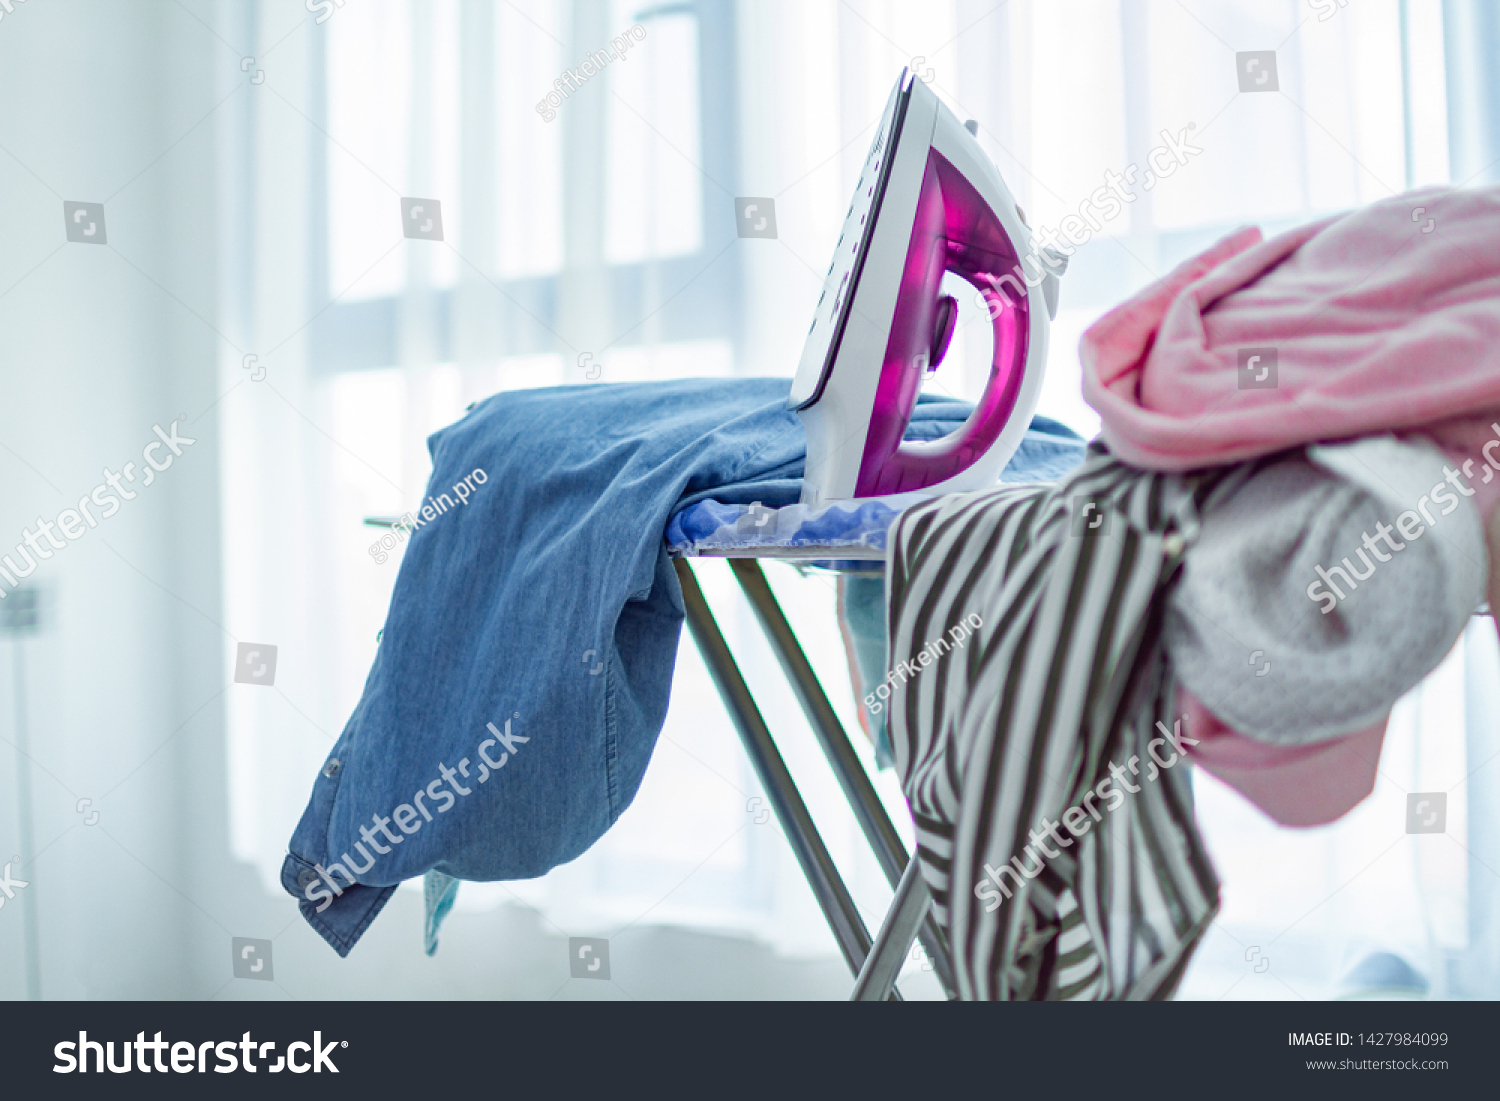 Iron and pile of clean clothes after laundry on ironing board  #1427984099